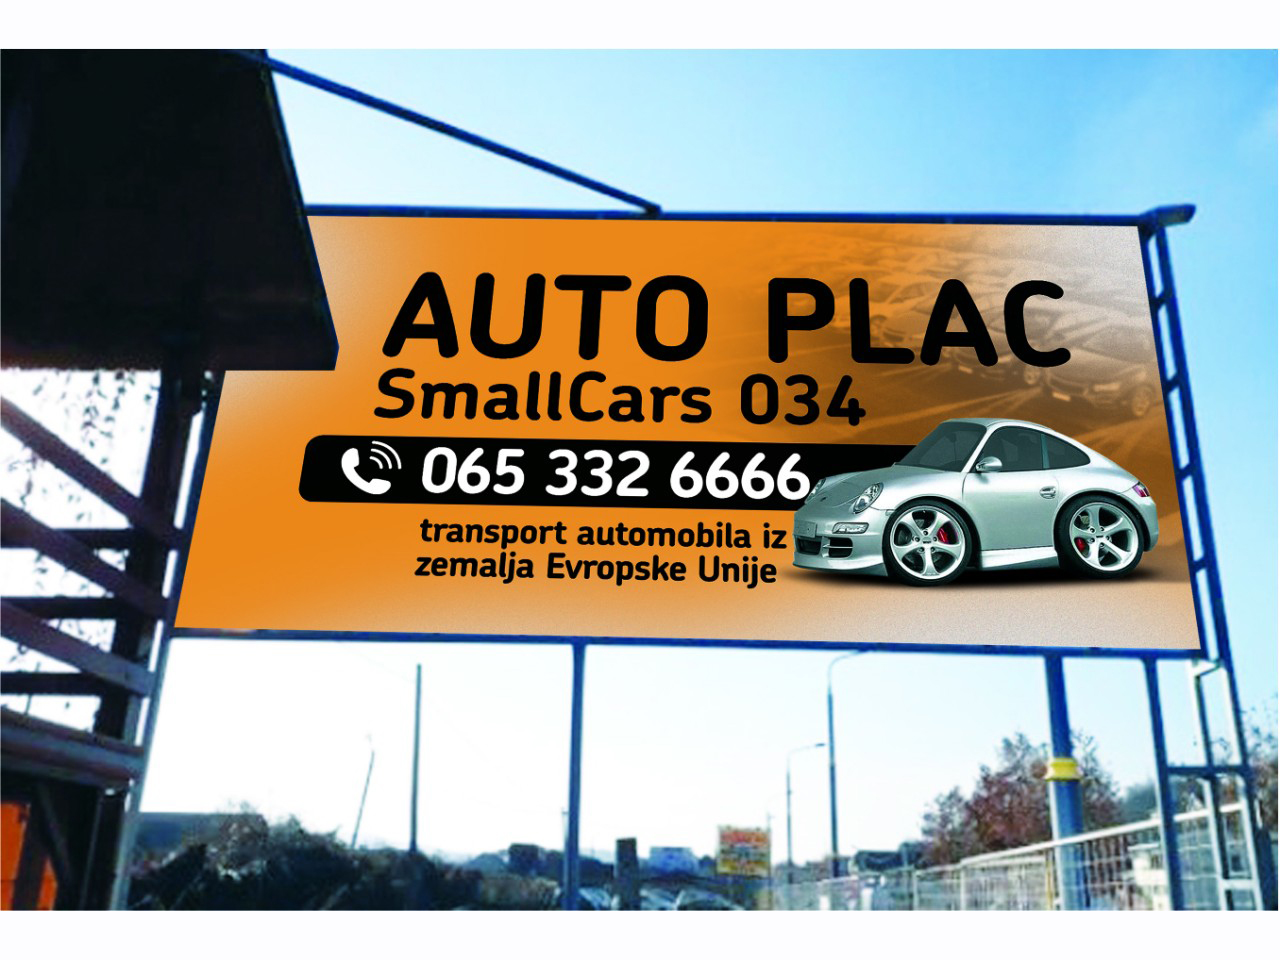 SMALL CARS 034 Second hand car shops Kragujevac - Photo 3